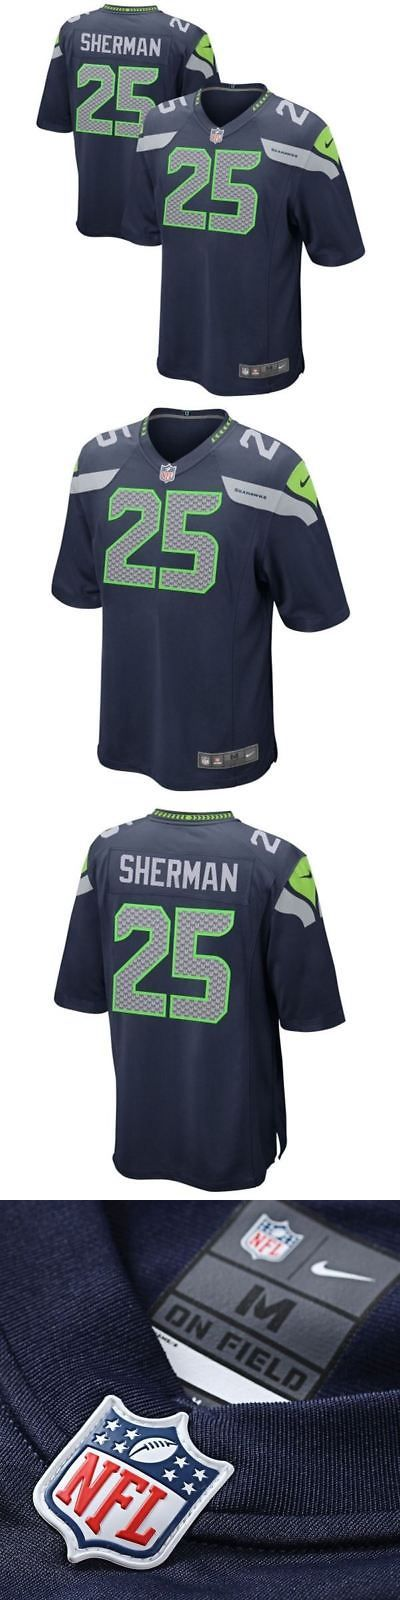 Youth 159111: Nike Nfl Youth #25 Richard Sherman Seattle Seahawks Game Jersey -> BUY IT NOW ONLY: $75 on eBay!